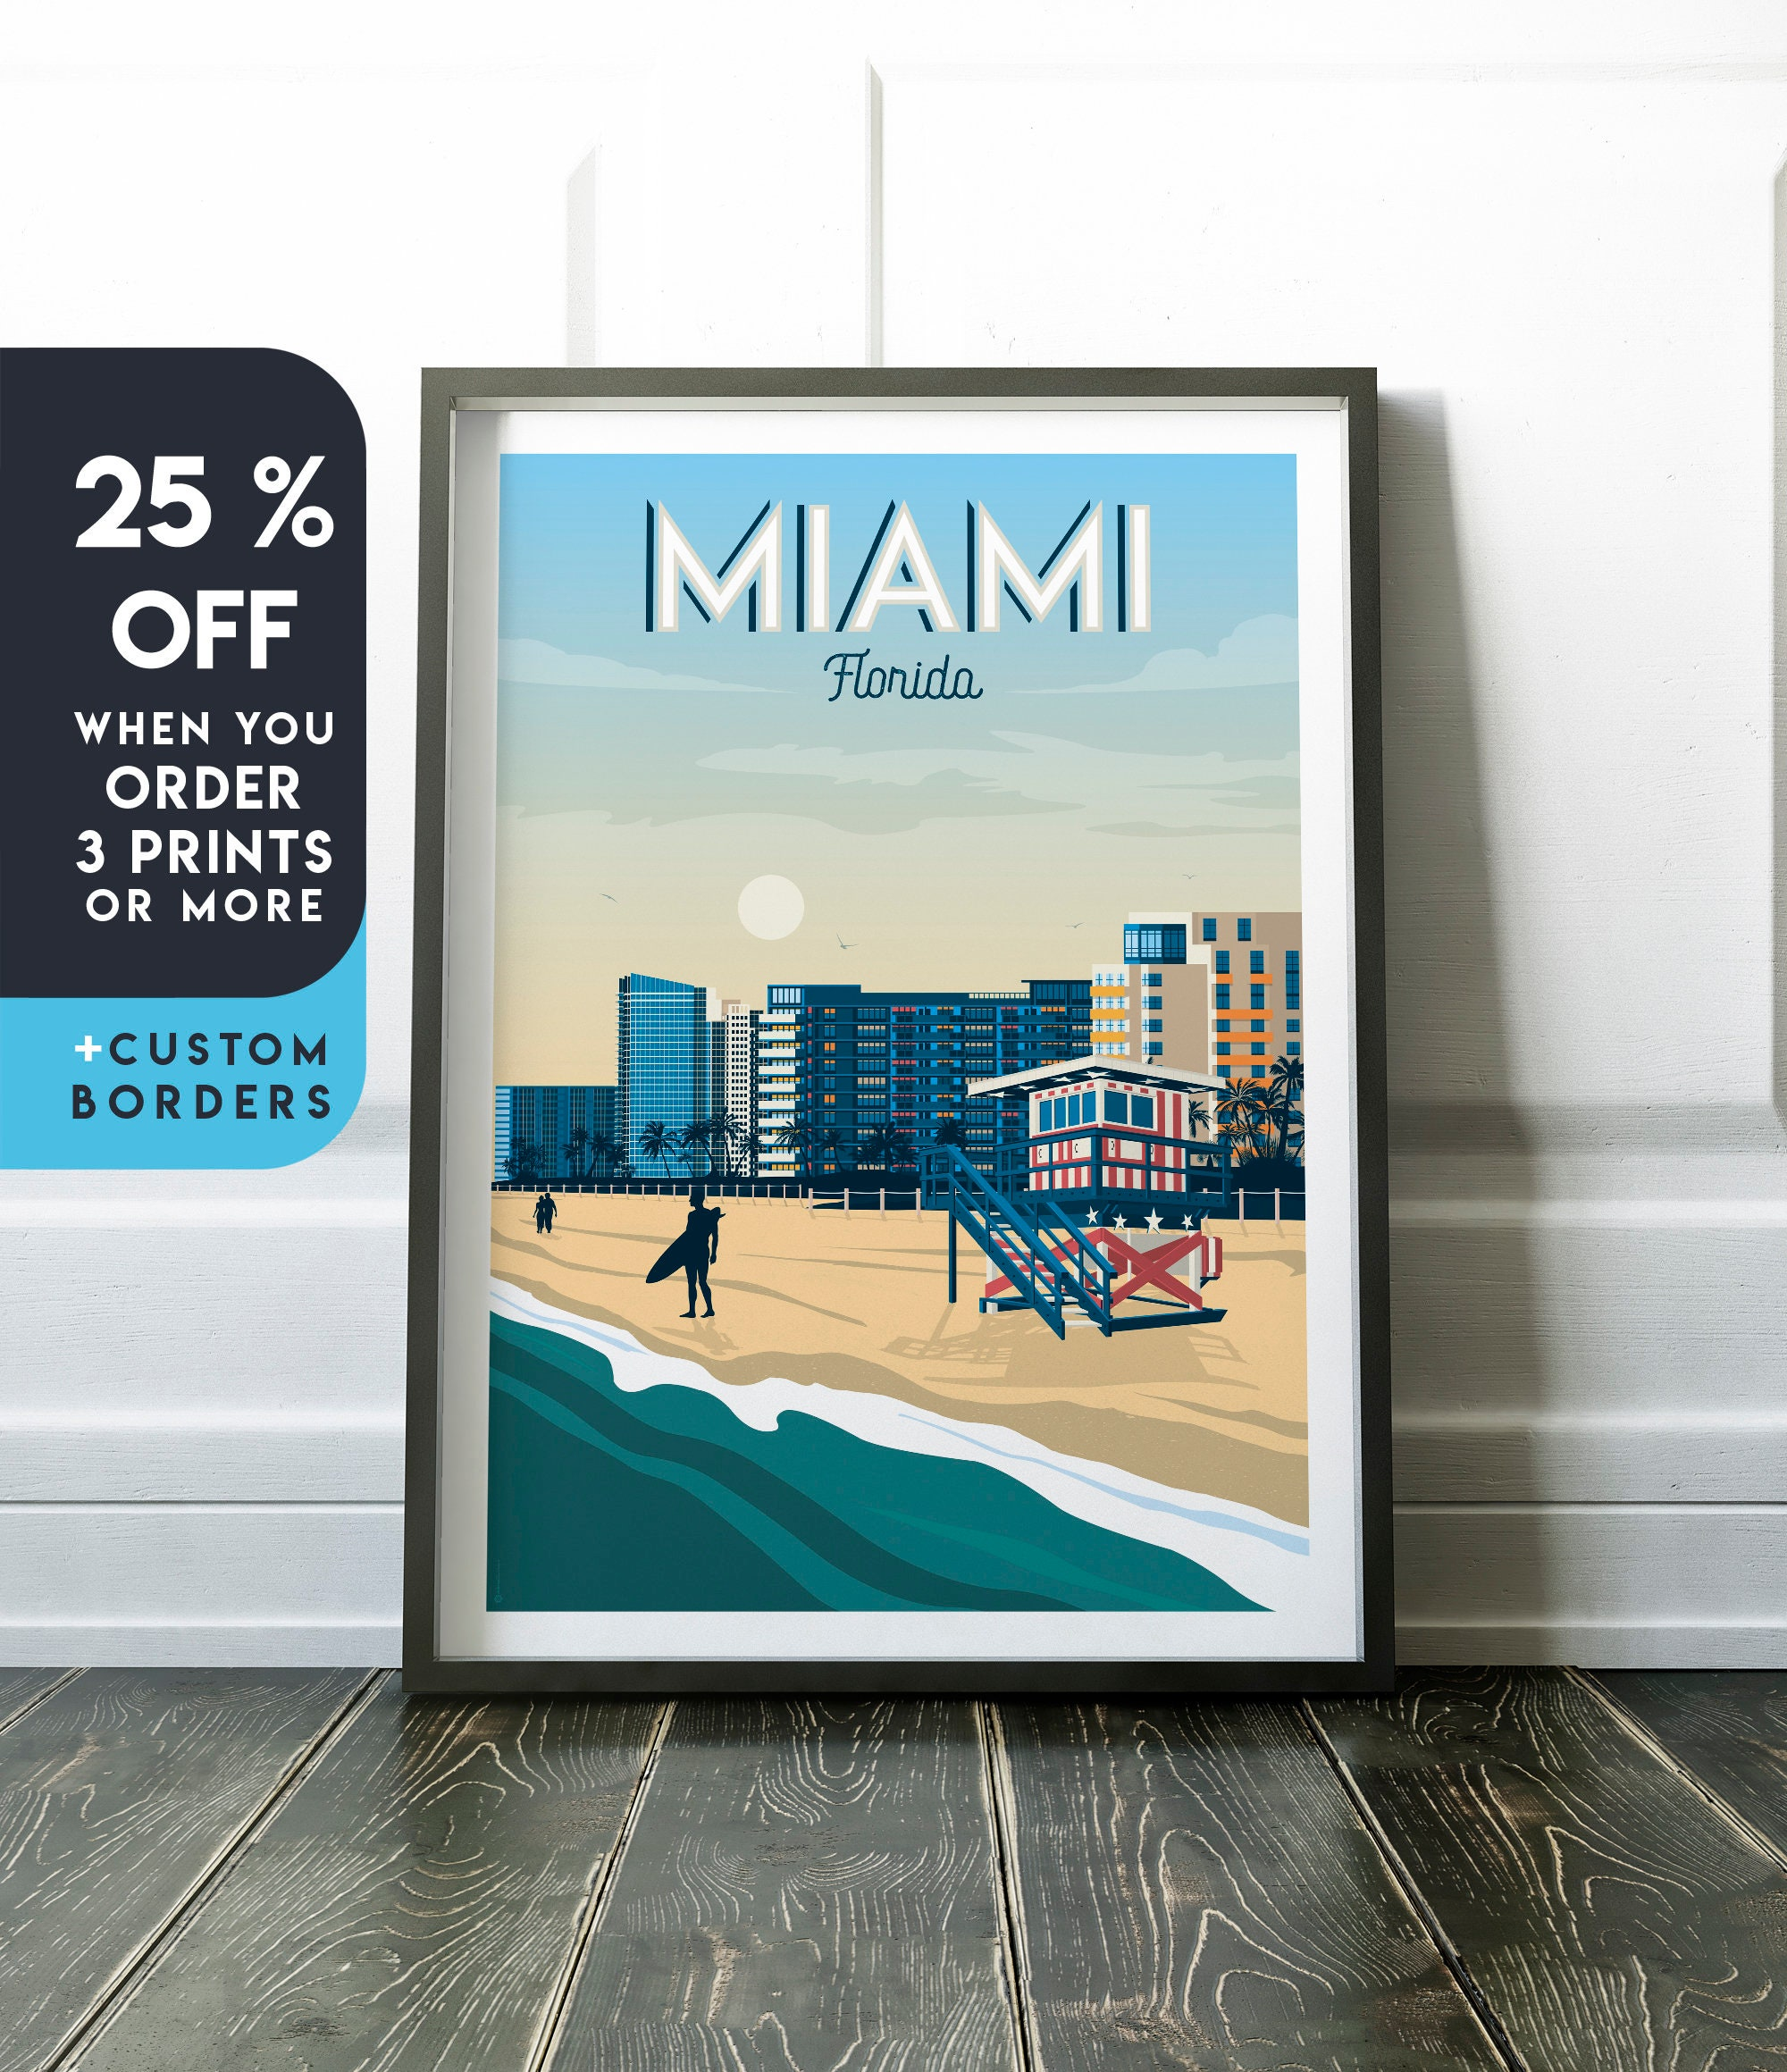 Miami Florida Air United States America Vintage Travel Advertisement Art Poster